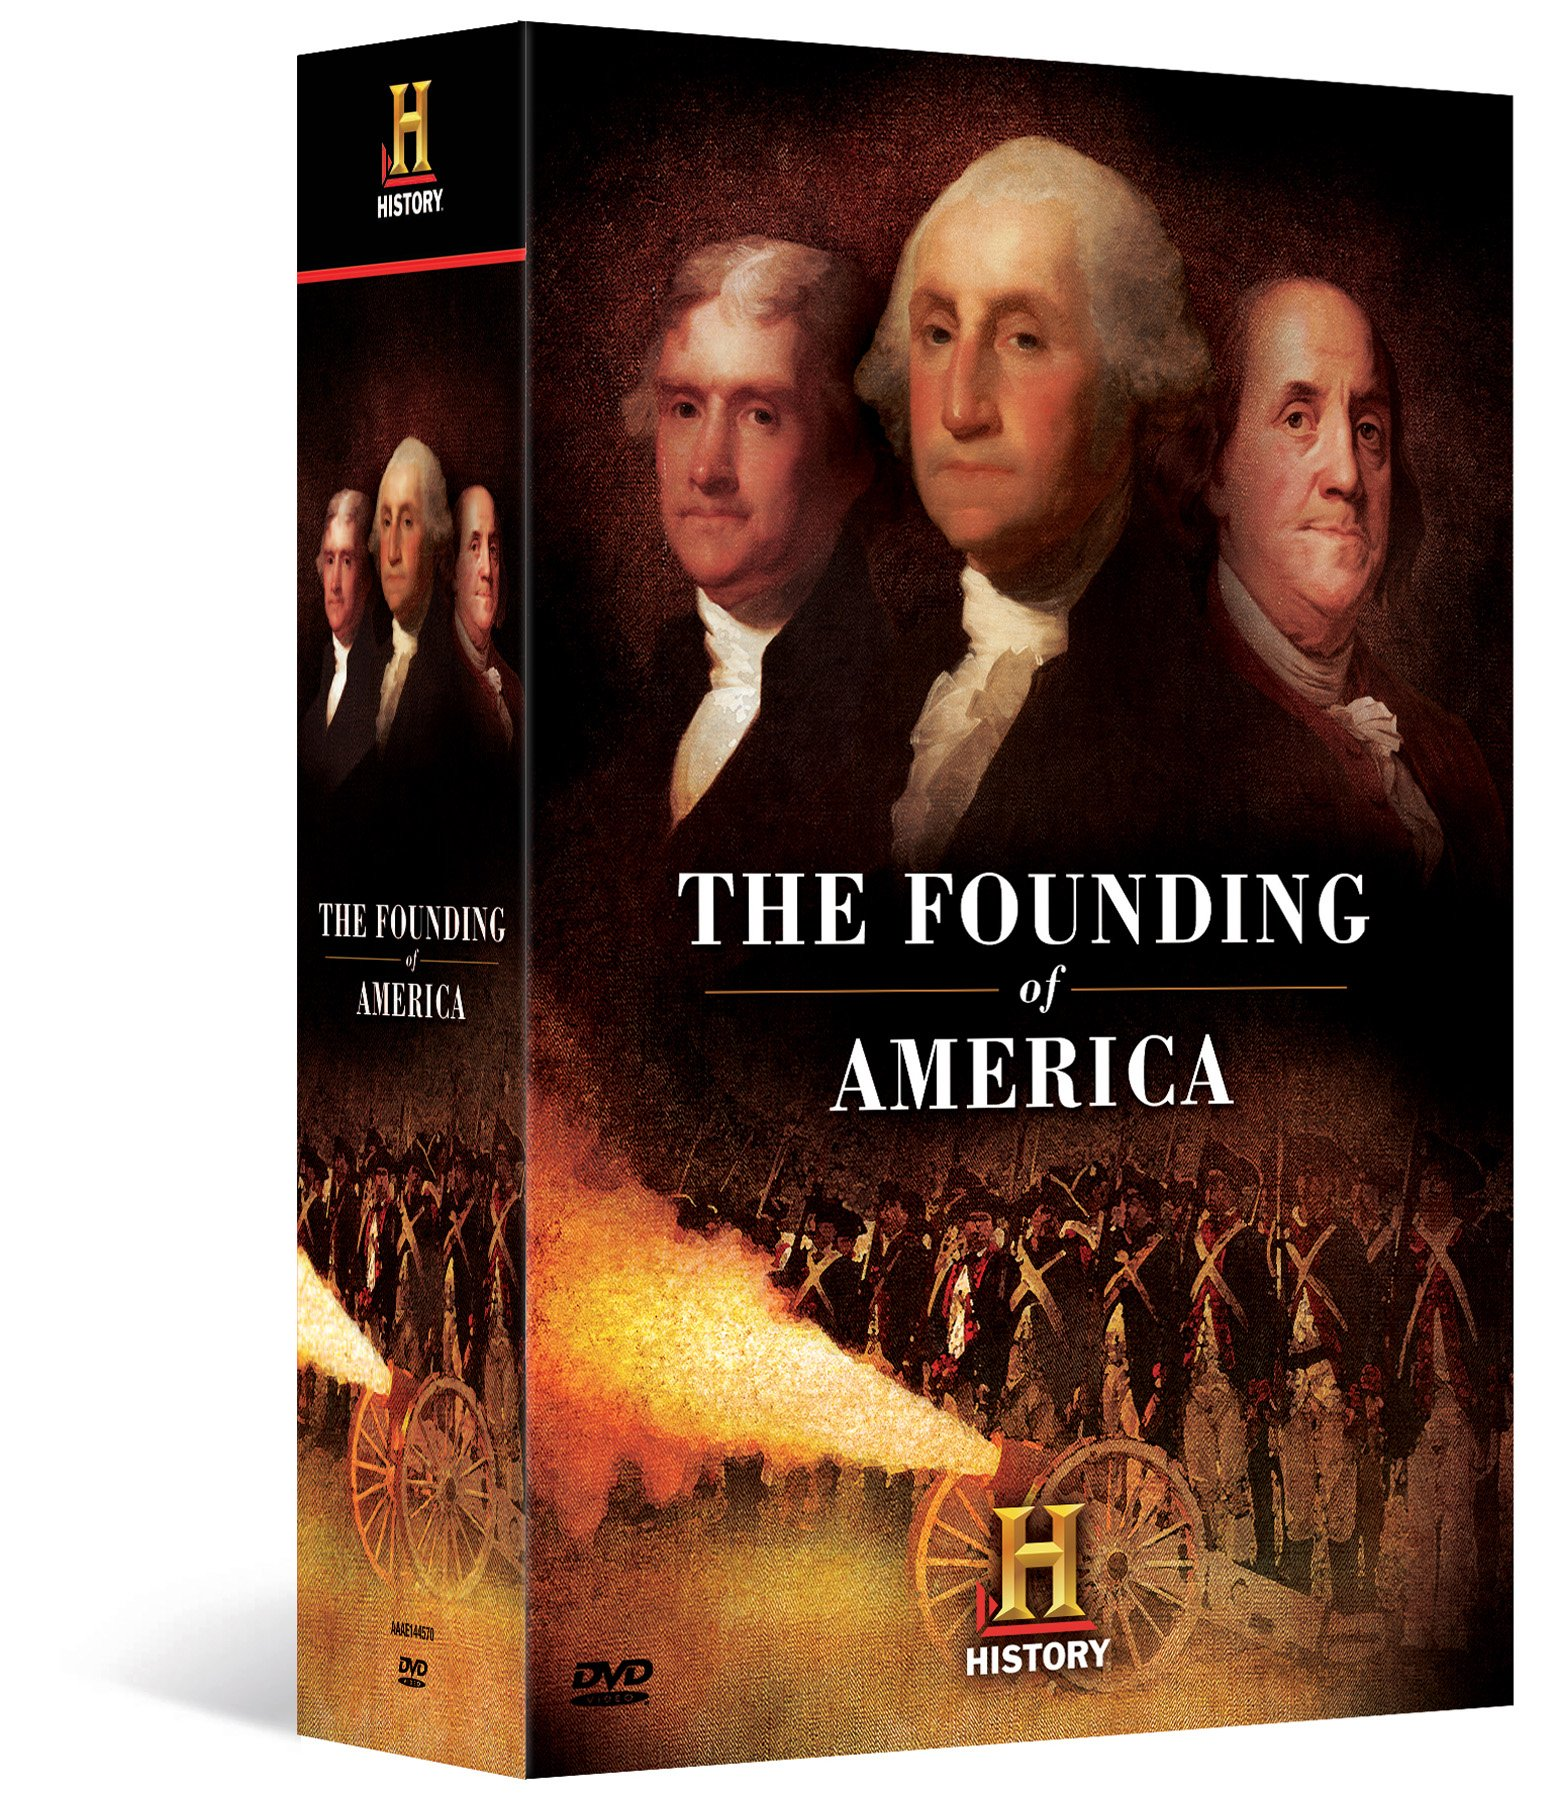 The Founding of America Megaset by A&E